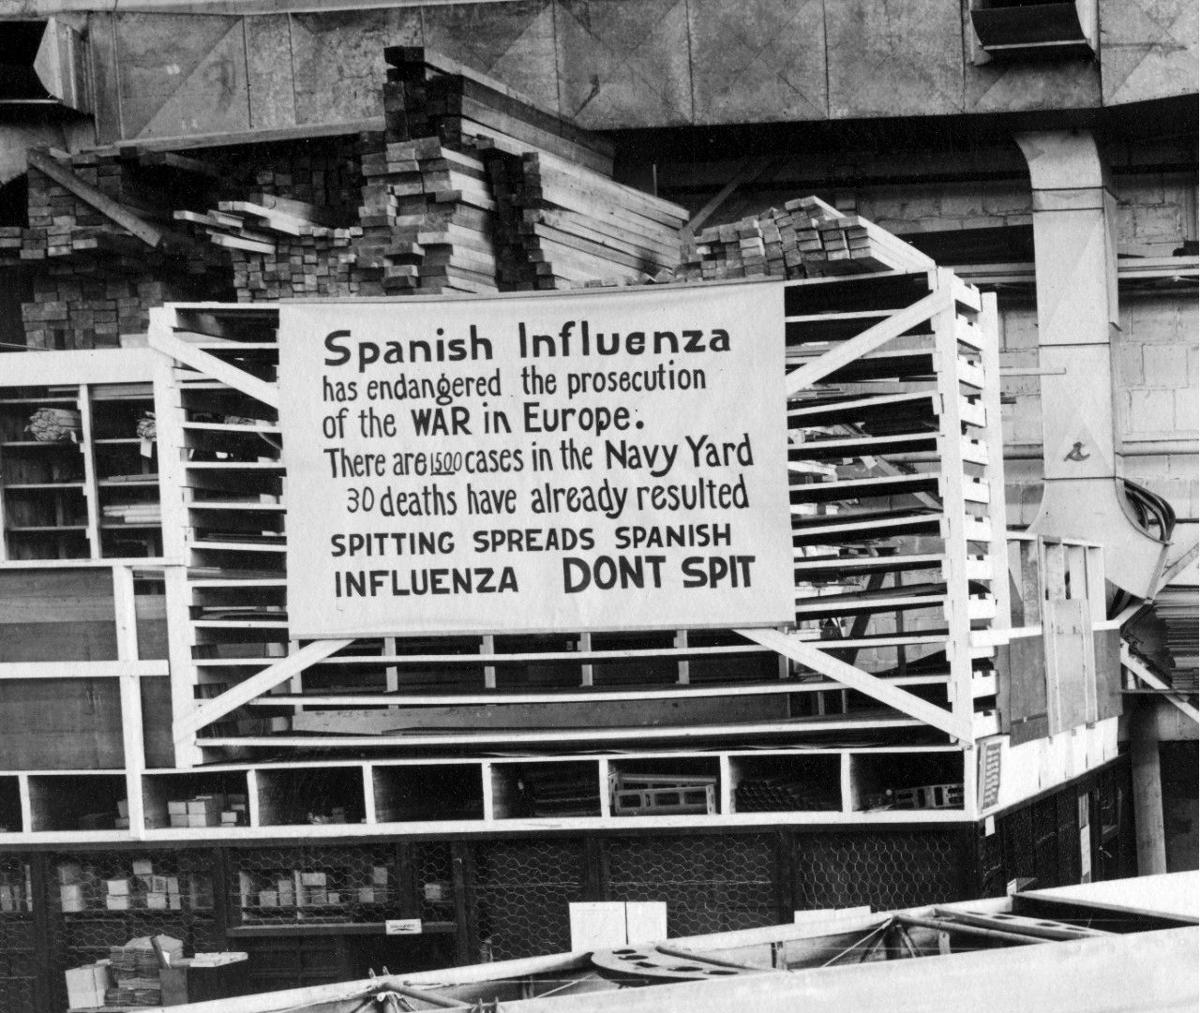 031920_MDJ_News_SpanishInfluenza2